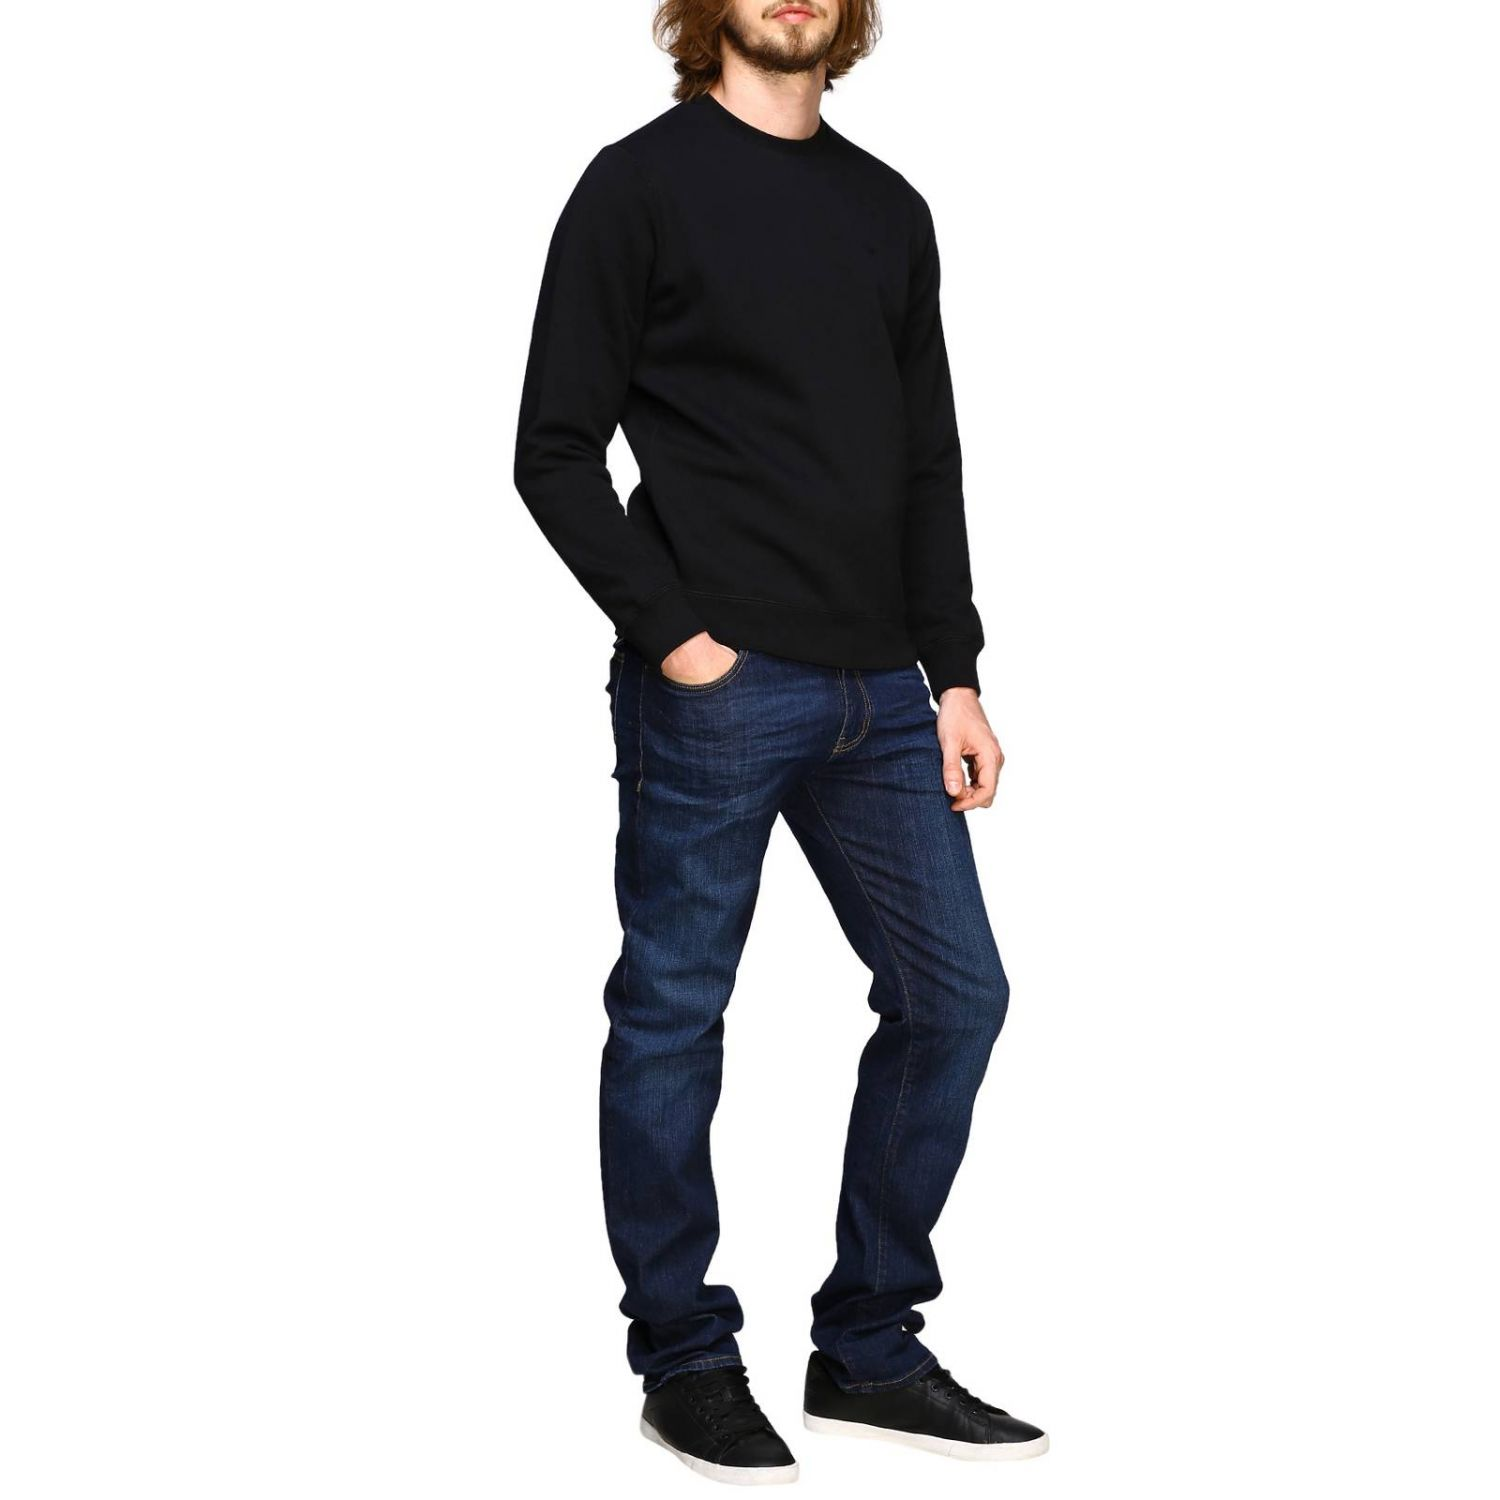 Sweater men Emporio Armani black 2